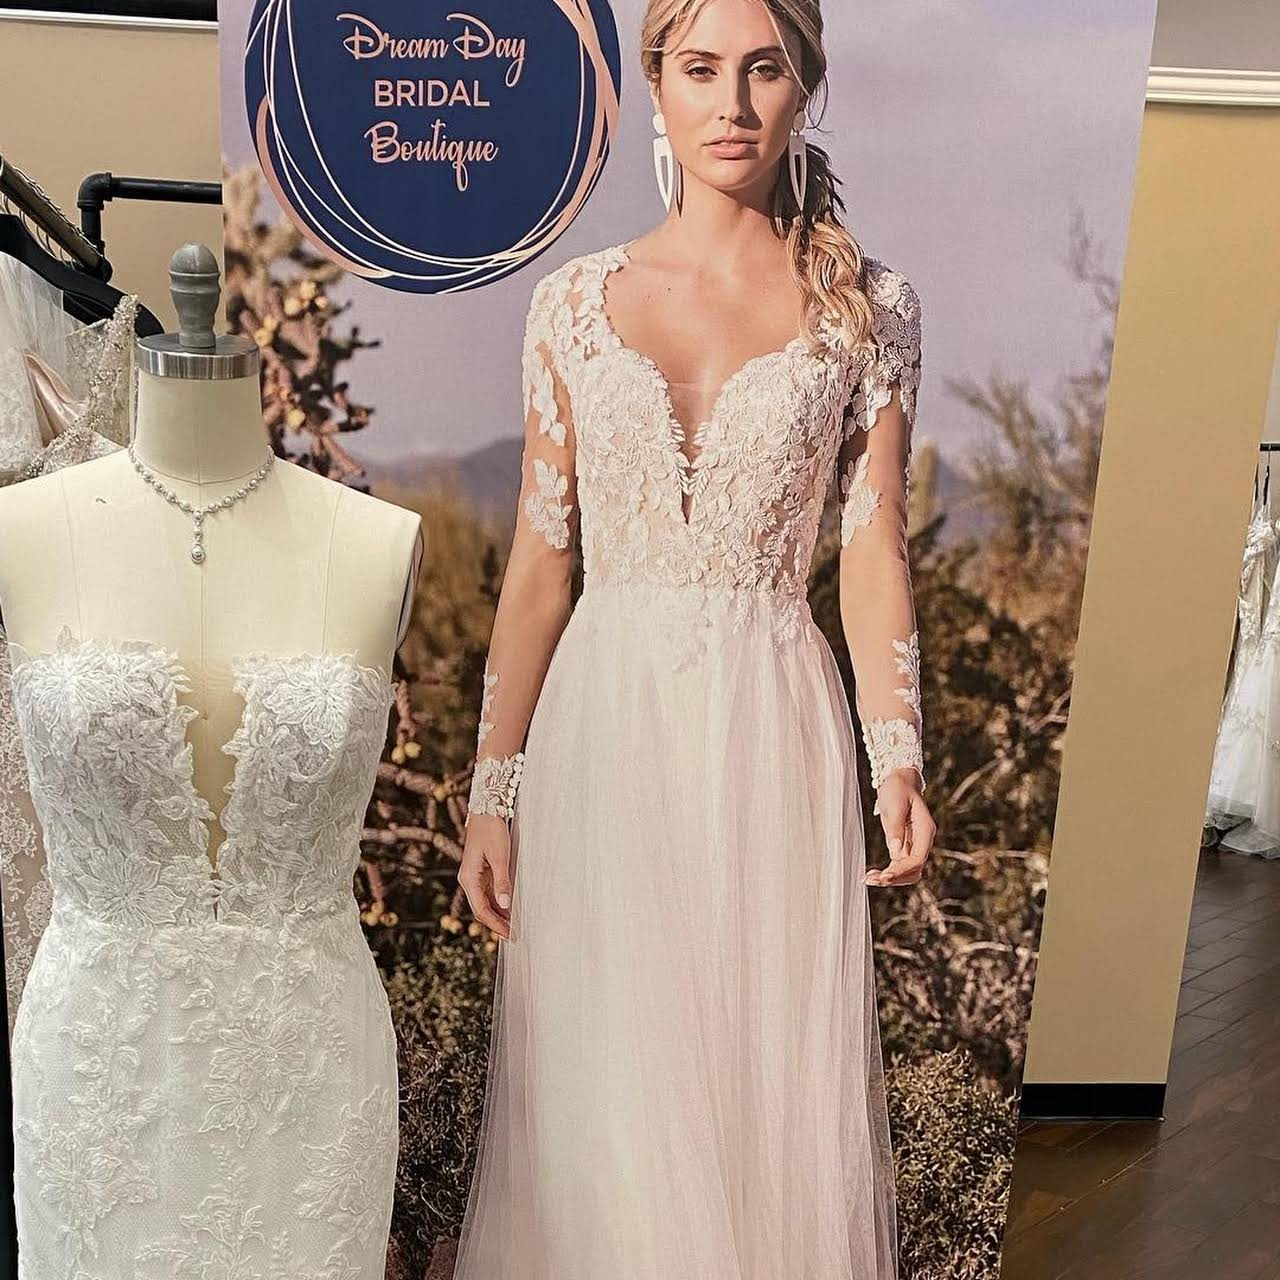 Dream Day Bridal   Bridal and Special Ocassion Shop in The ...